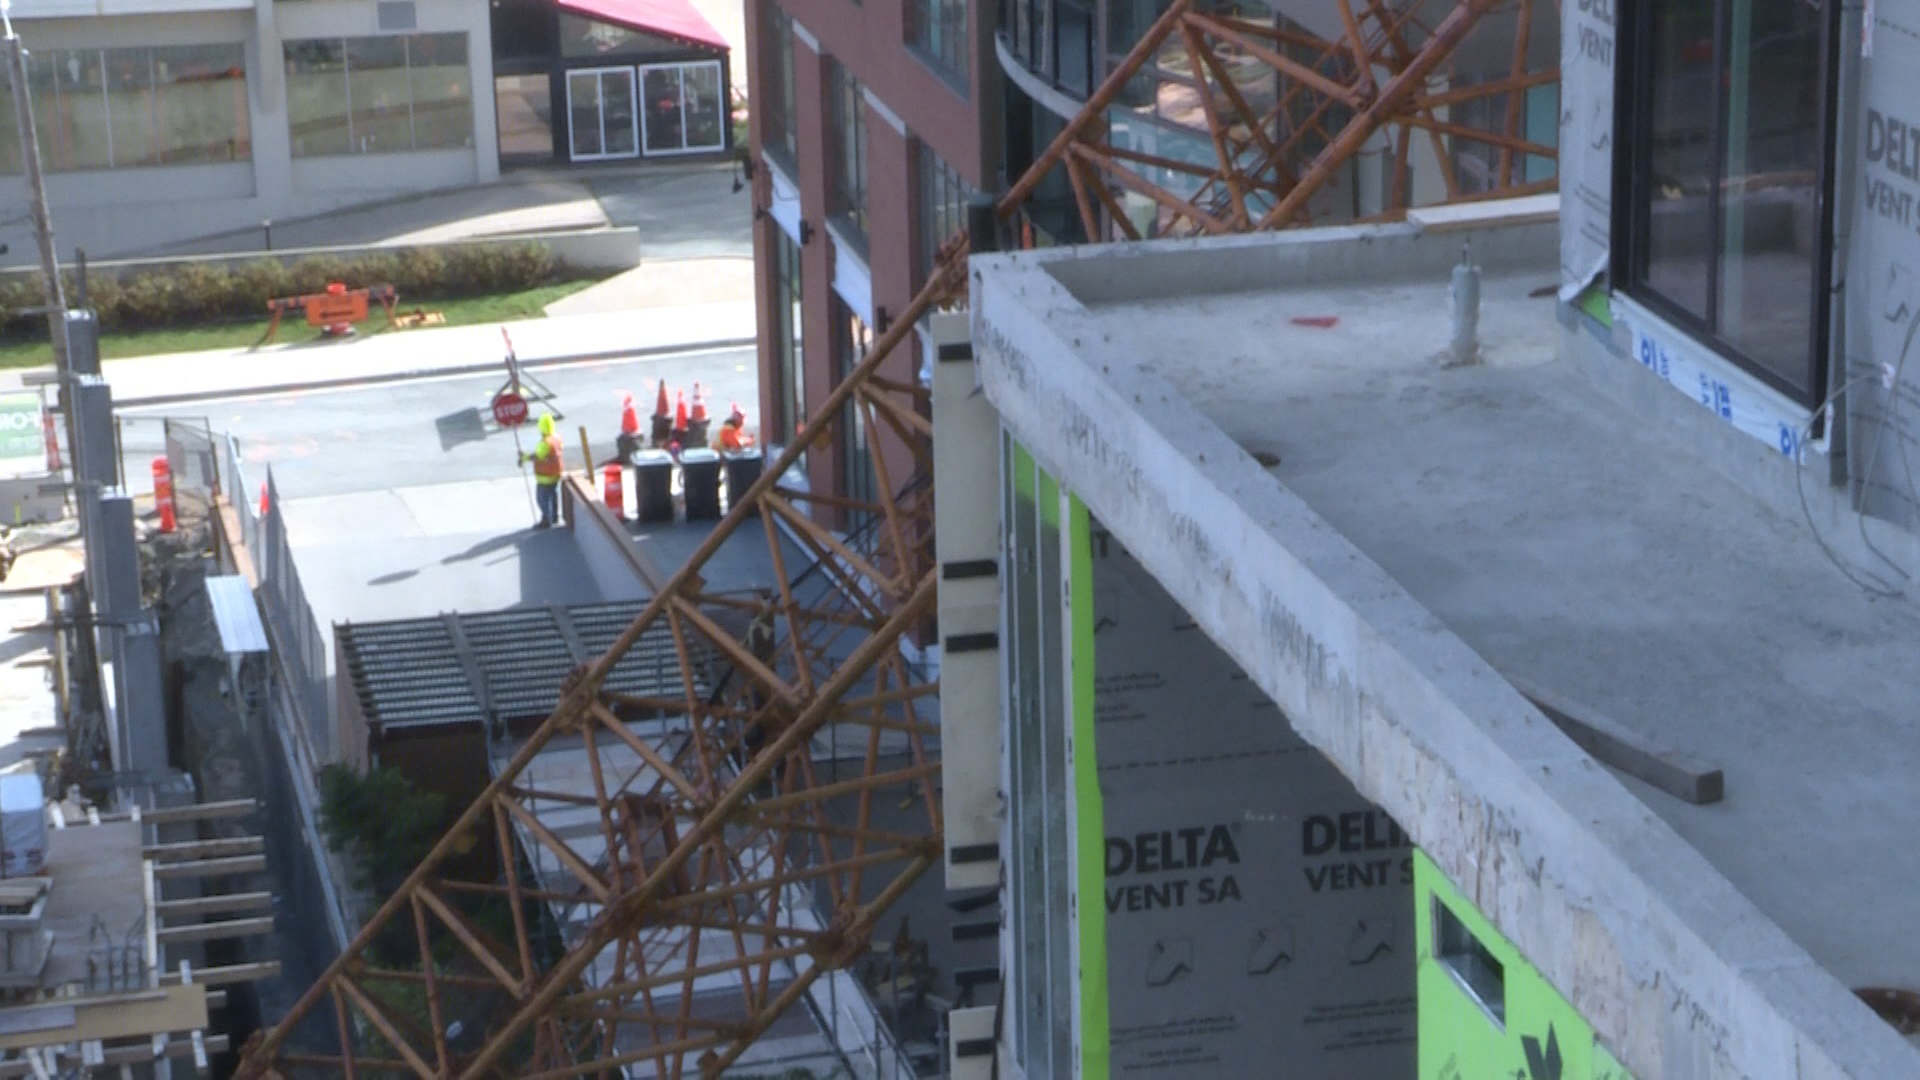 Progress slow but steady at site of collapsed crane in Halifax